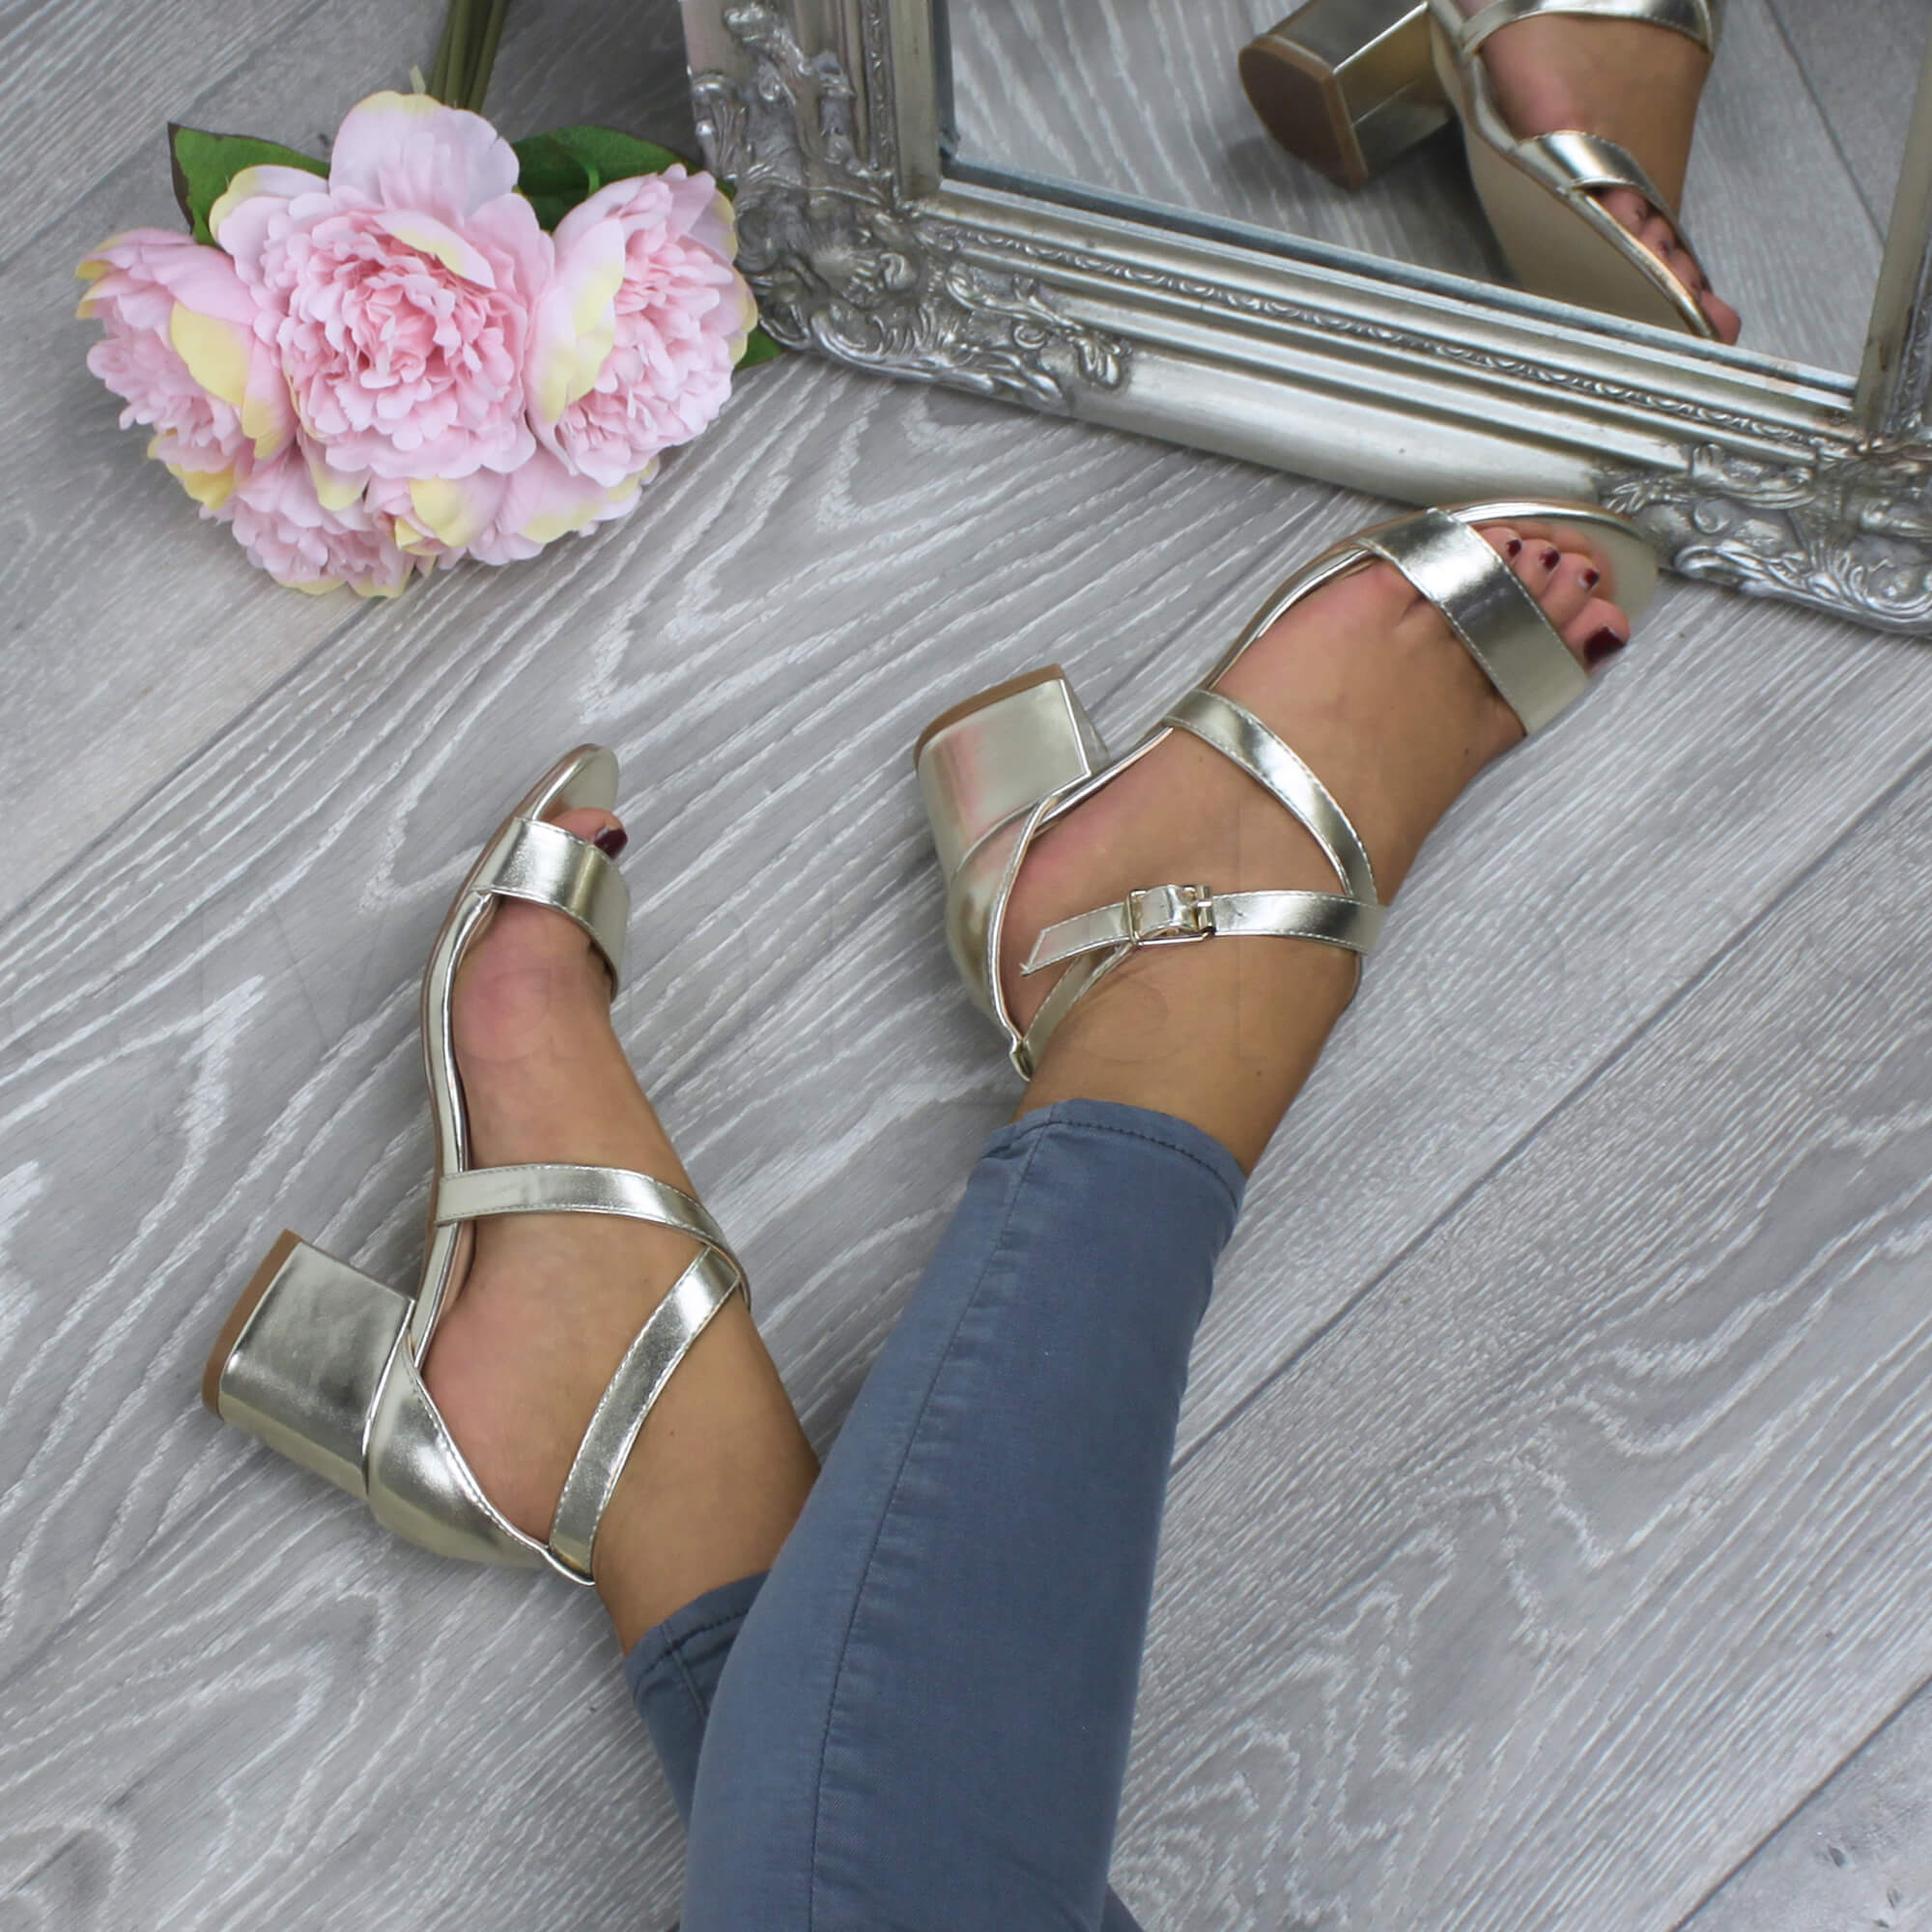 WOMENS-LADIES-MID-LOW-BLOCK-HEEL-CROSS-STRAPS-PARTY-STRAPPY-SANDALS-SHOES-SIZE thumbnail 33